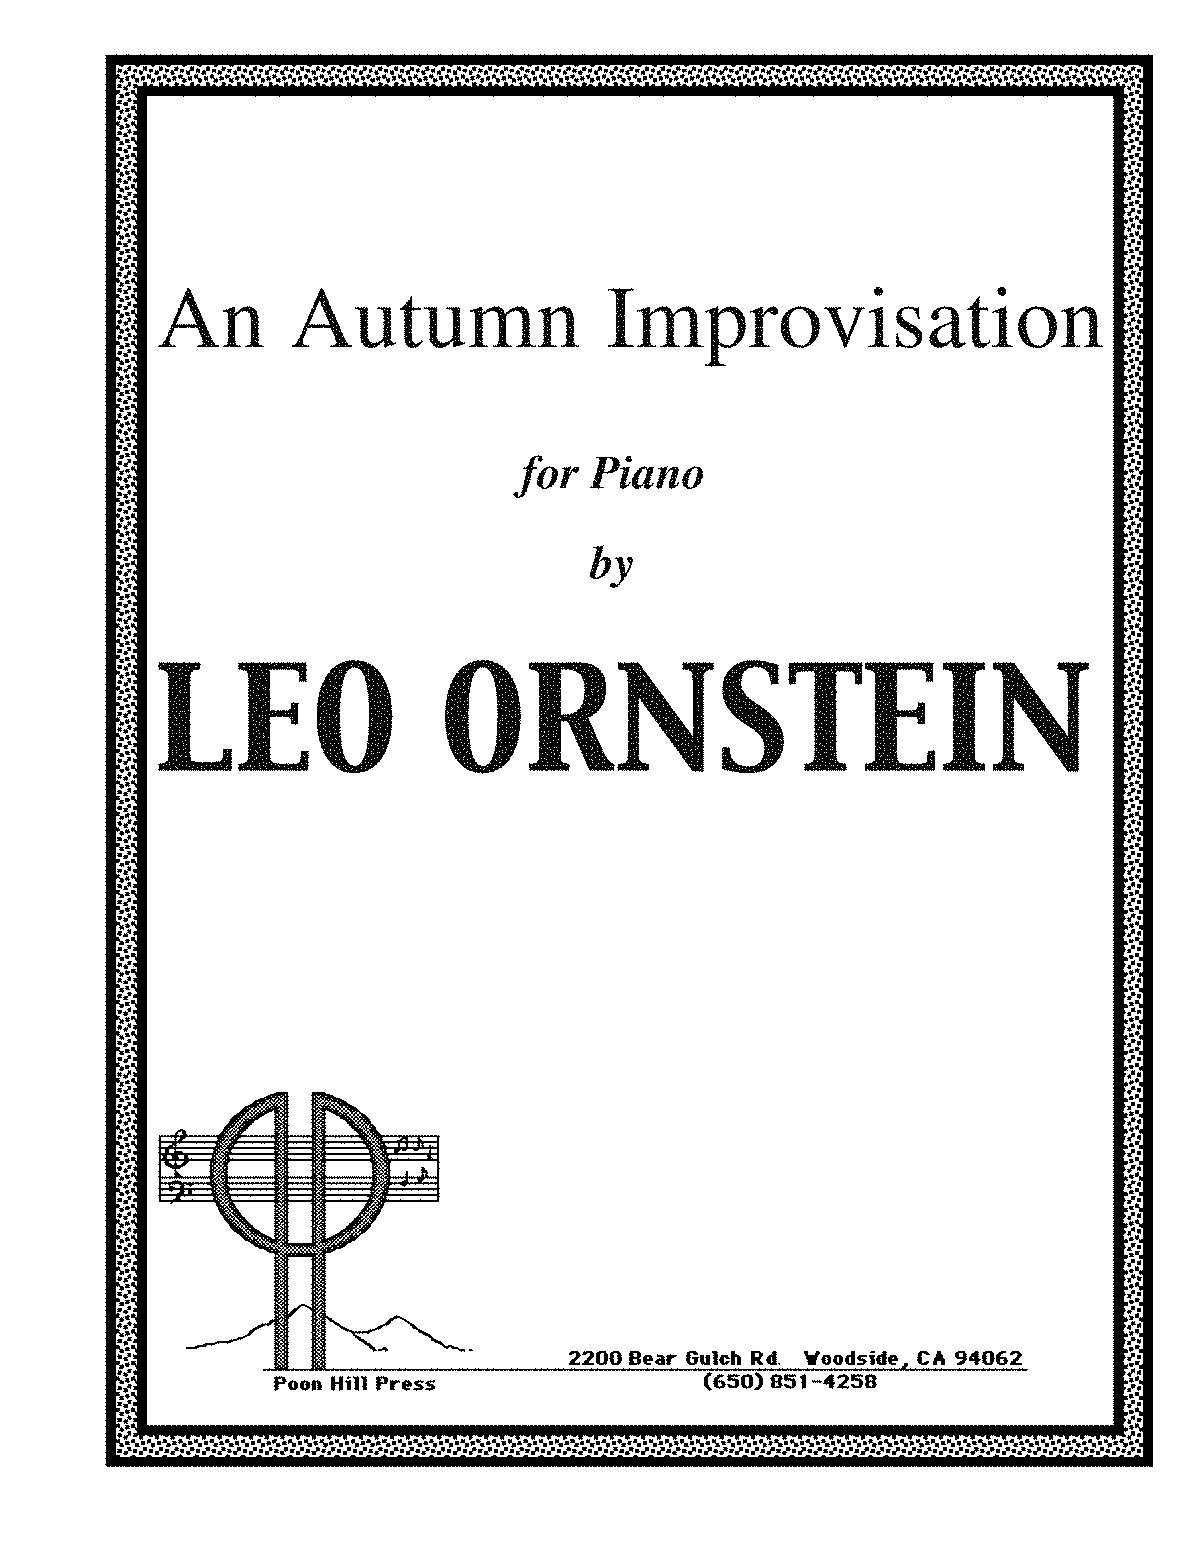 S119 - An Autumn Improv.pdf